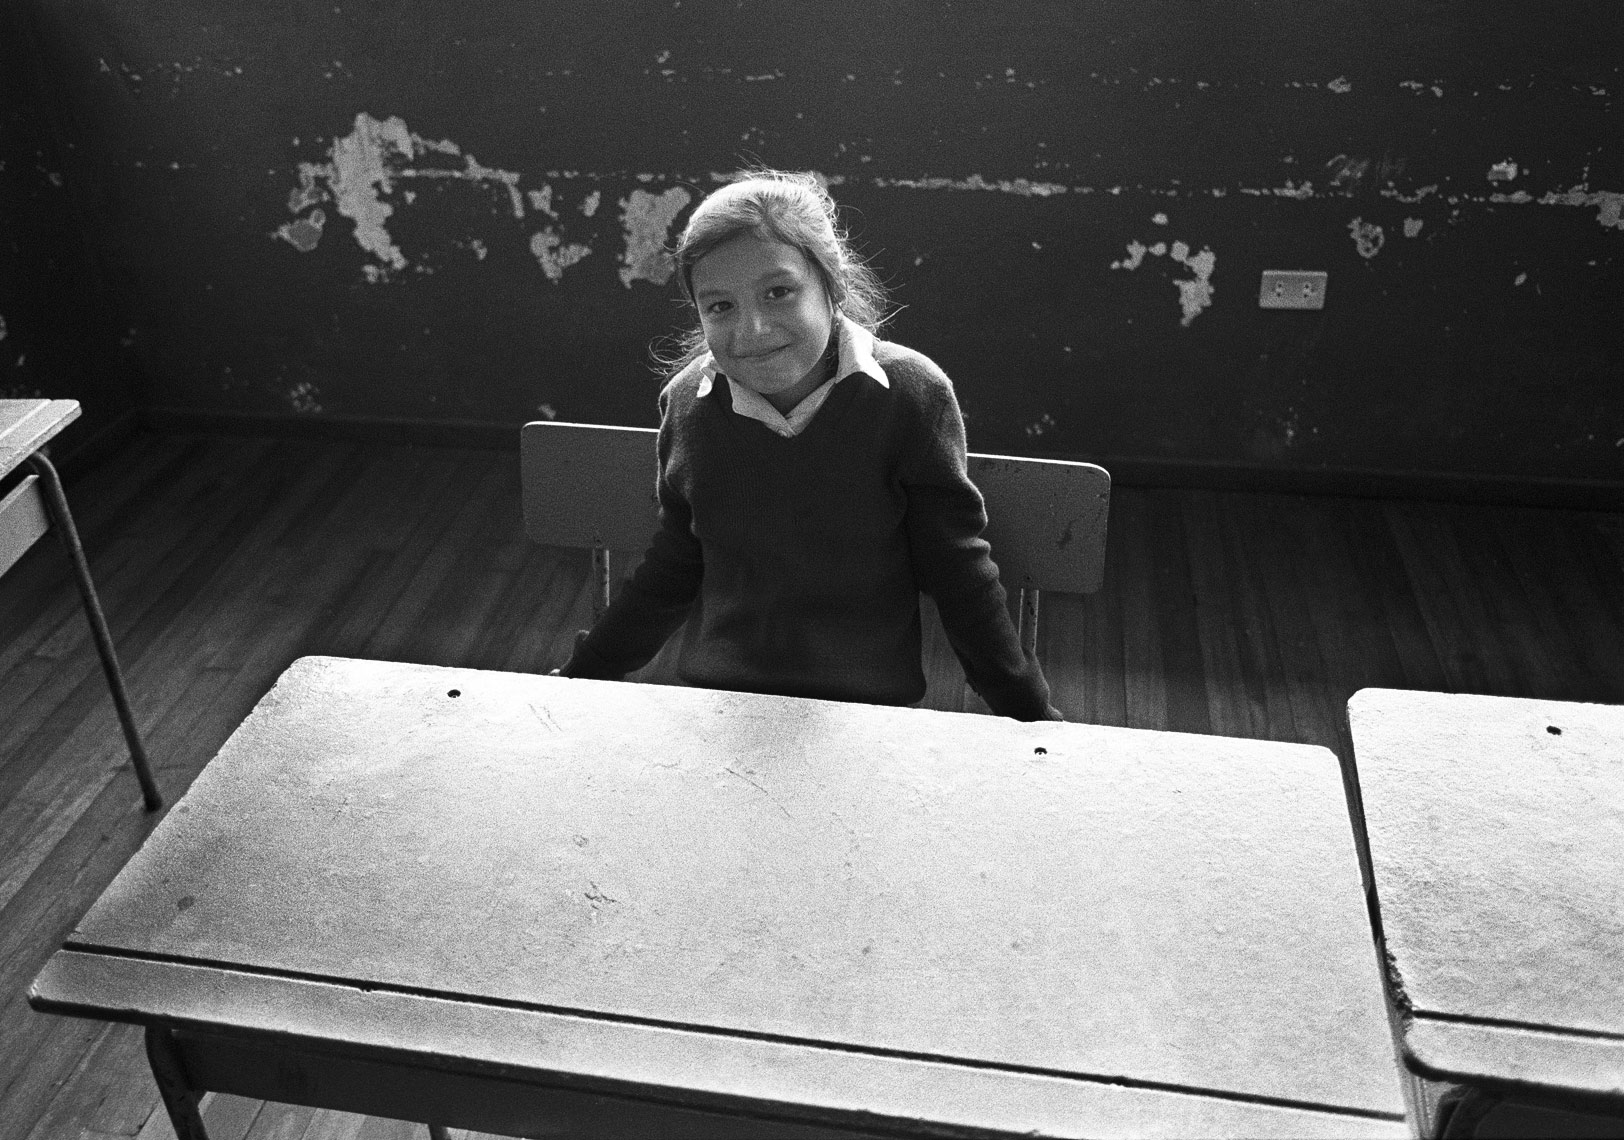 girl-at-desk